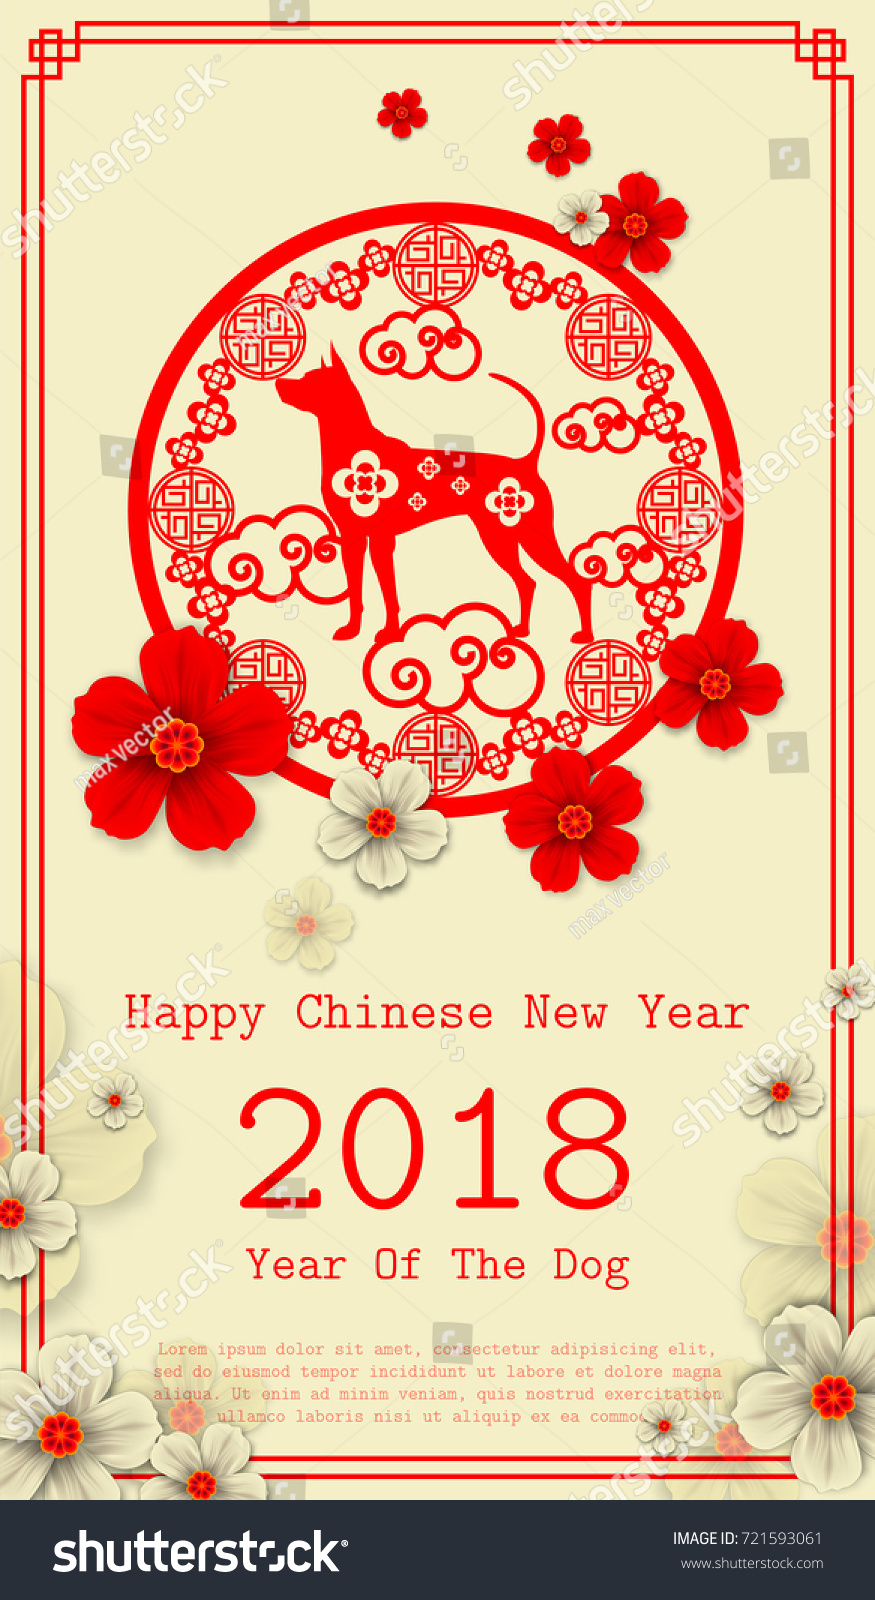 2018 chinese new year paper cutting stock vector royalty free 2018 chinese new year paper cutting year of dog vector design for your greetings card m4hsunfo